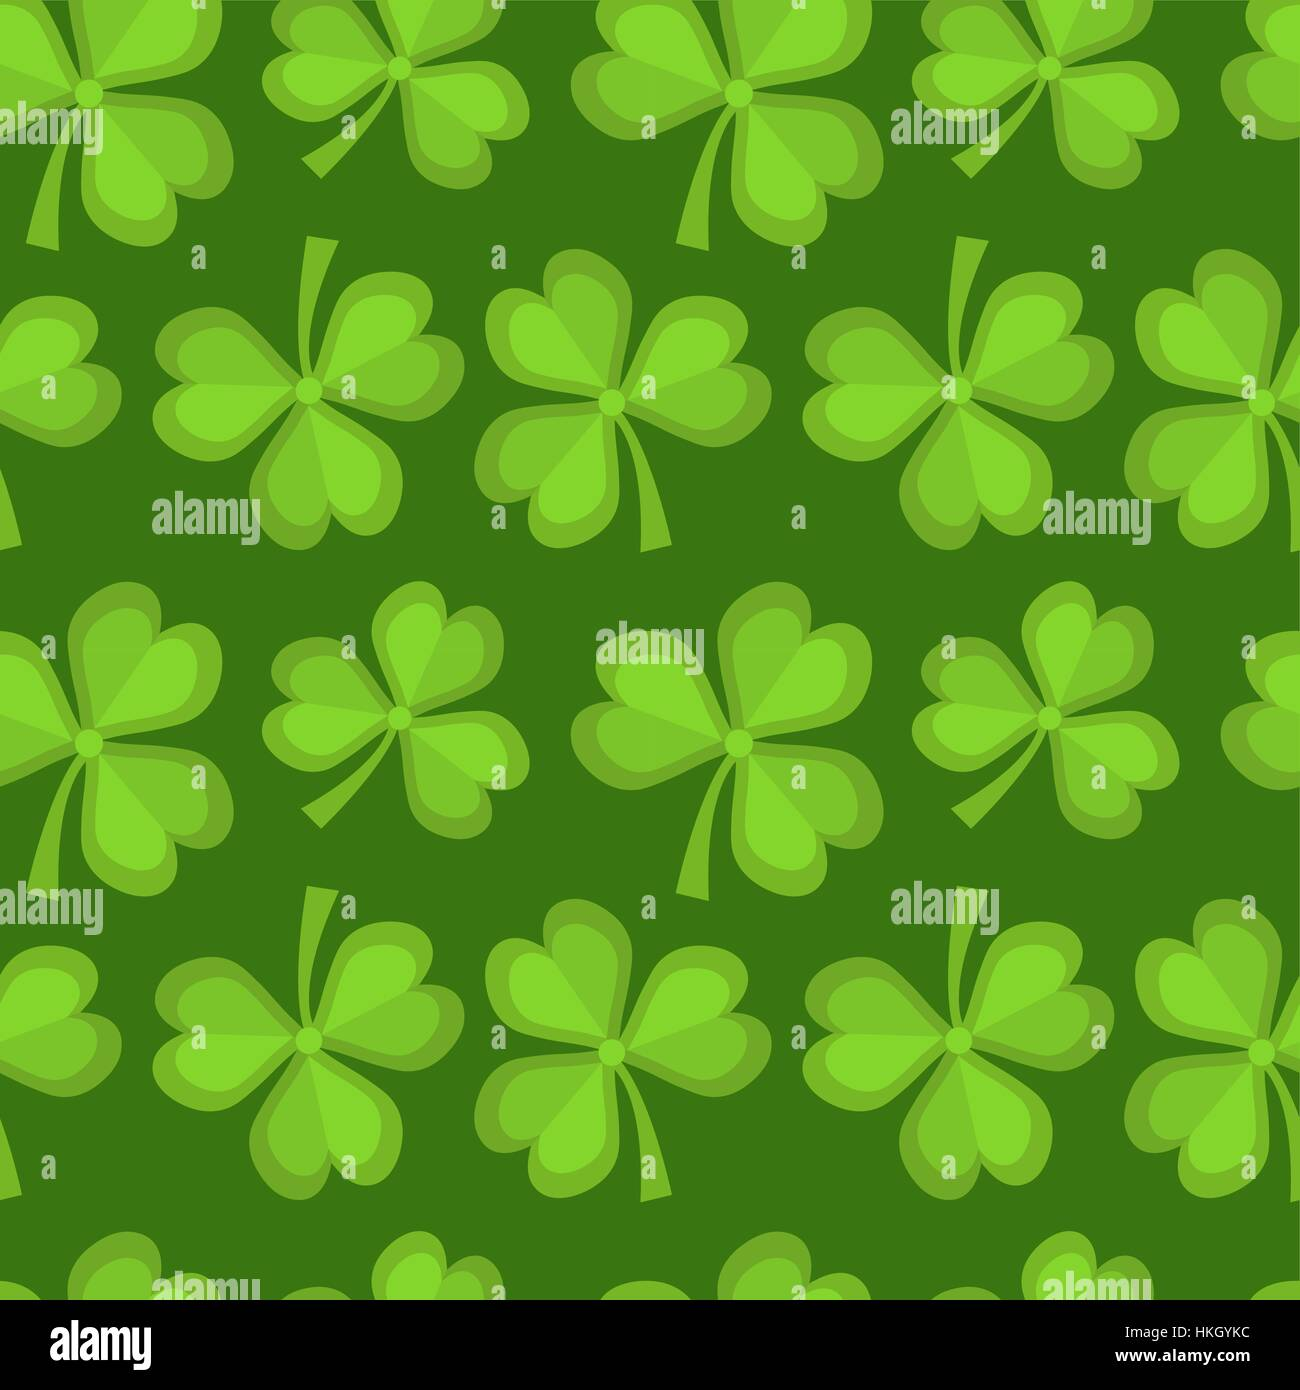 shamrock pattern wallpaper 1366x768 - photo #9